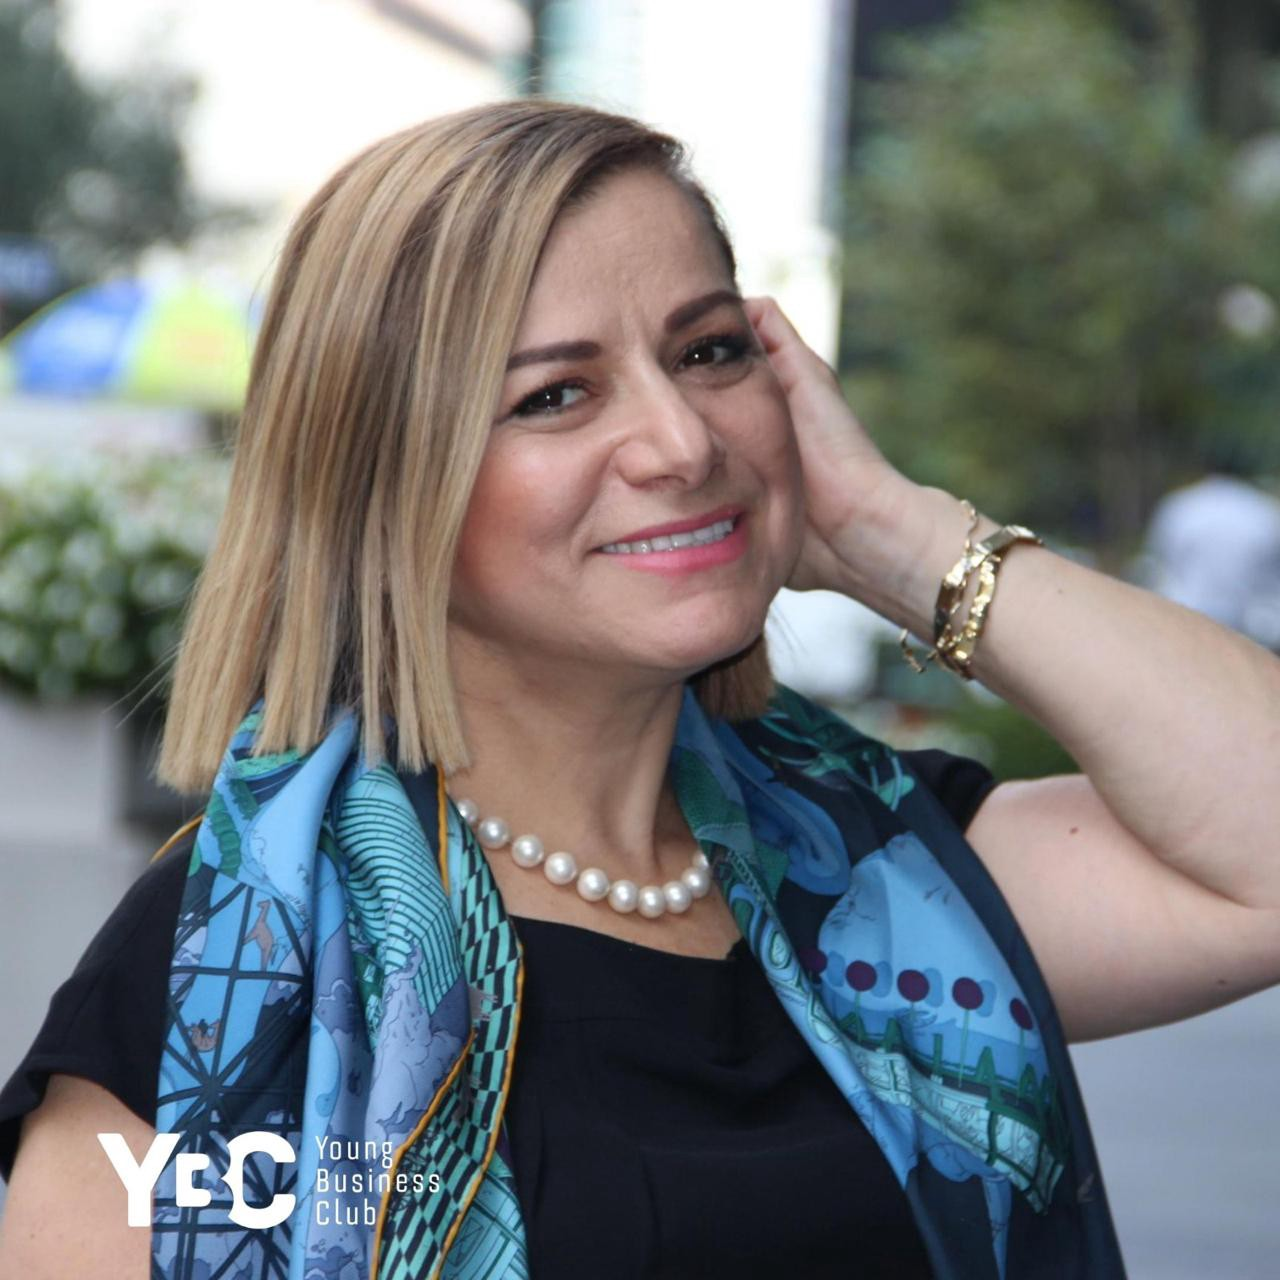 Emma Arakelyan, speaker of the Young Business Club of New York City, YBC NYC